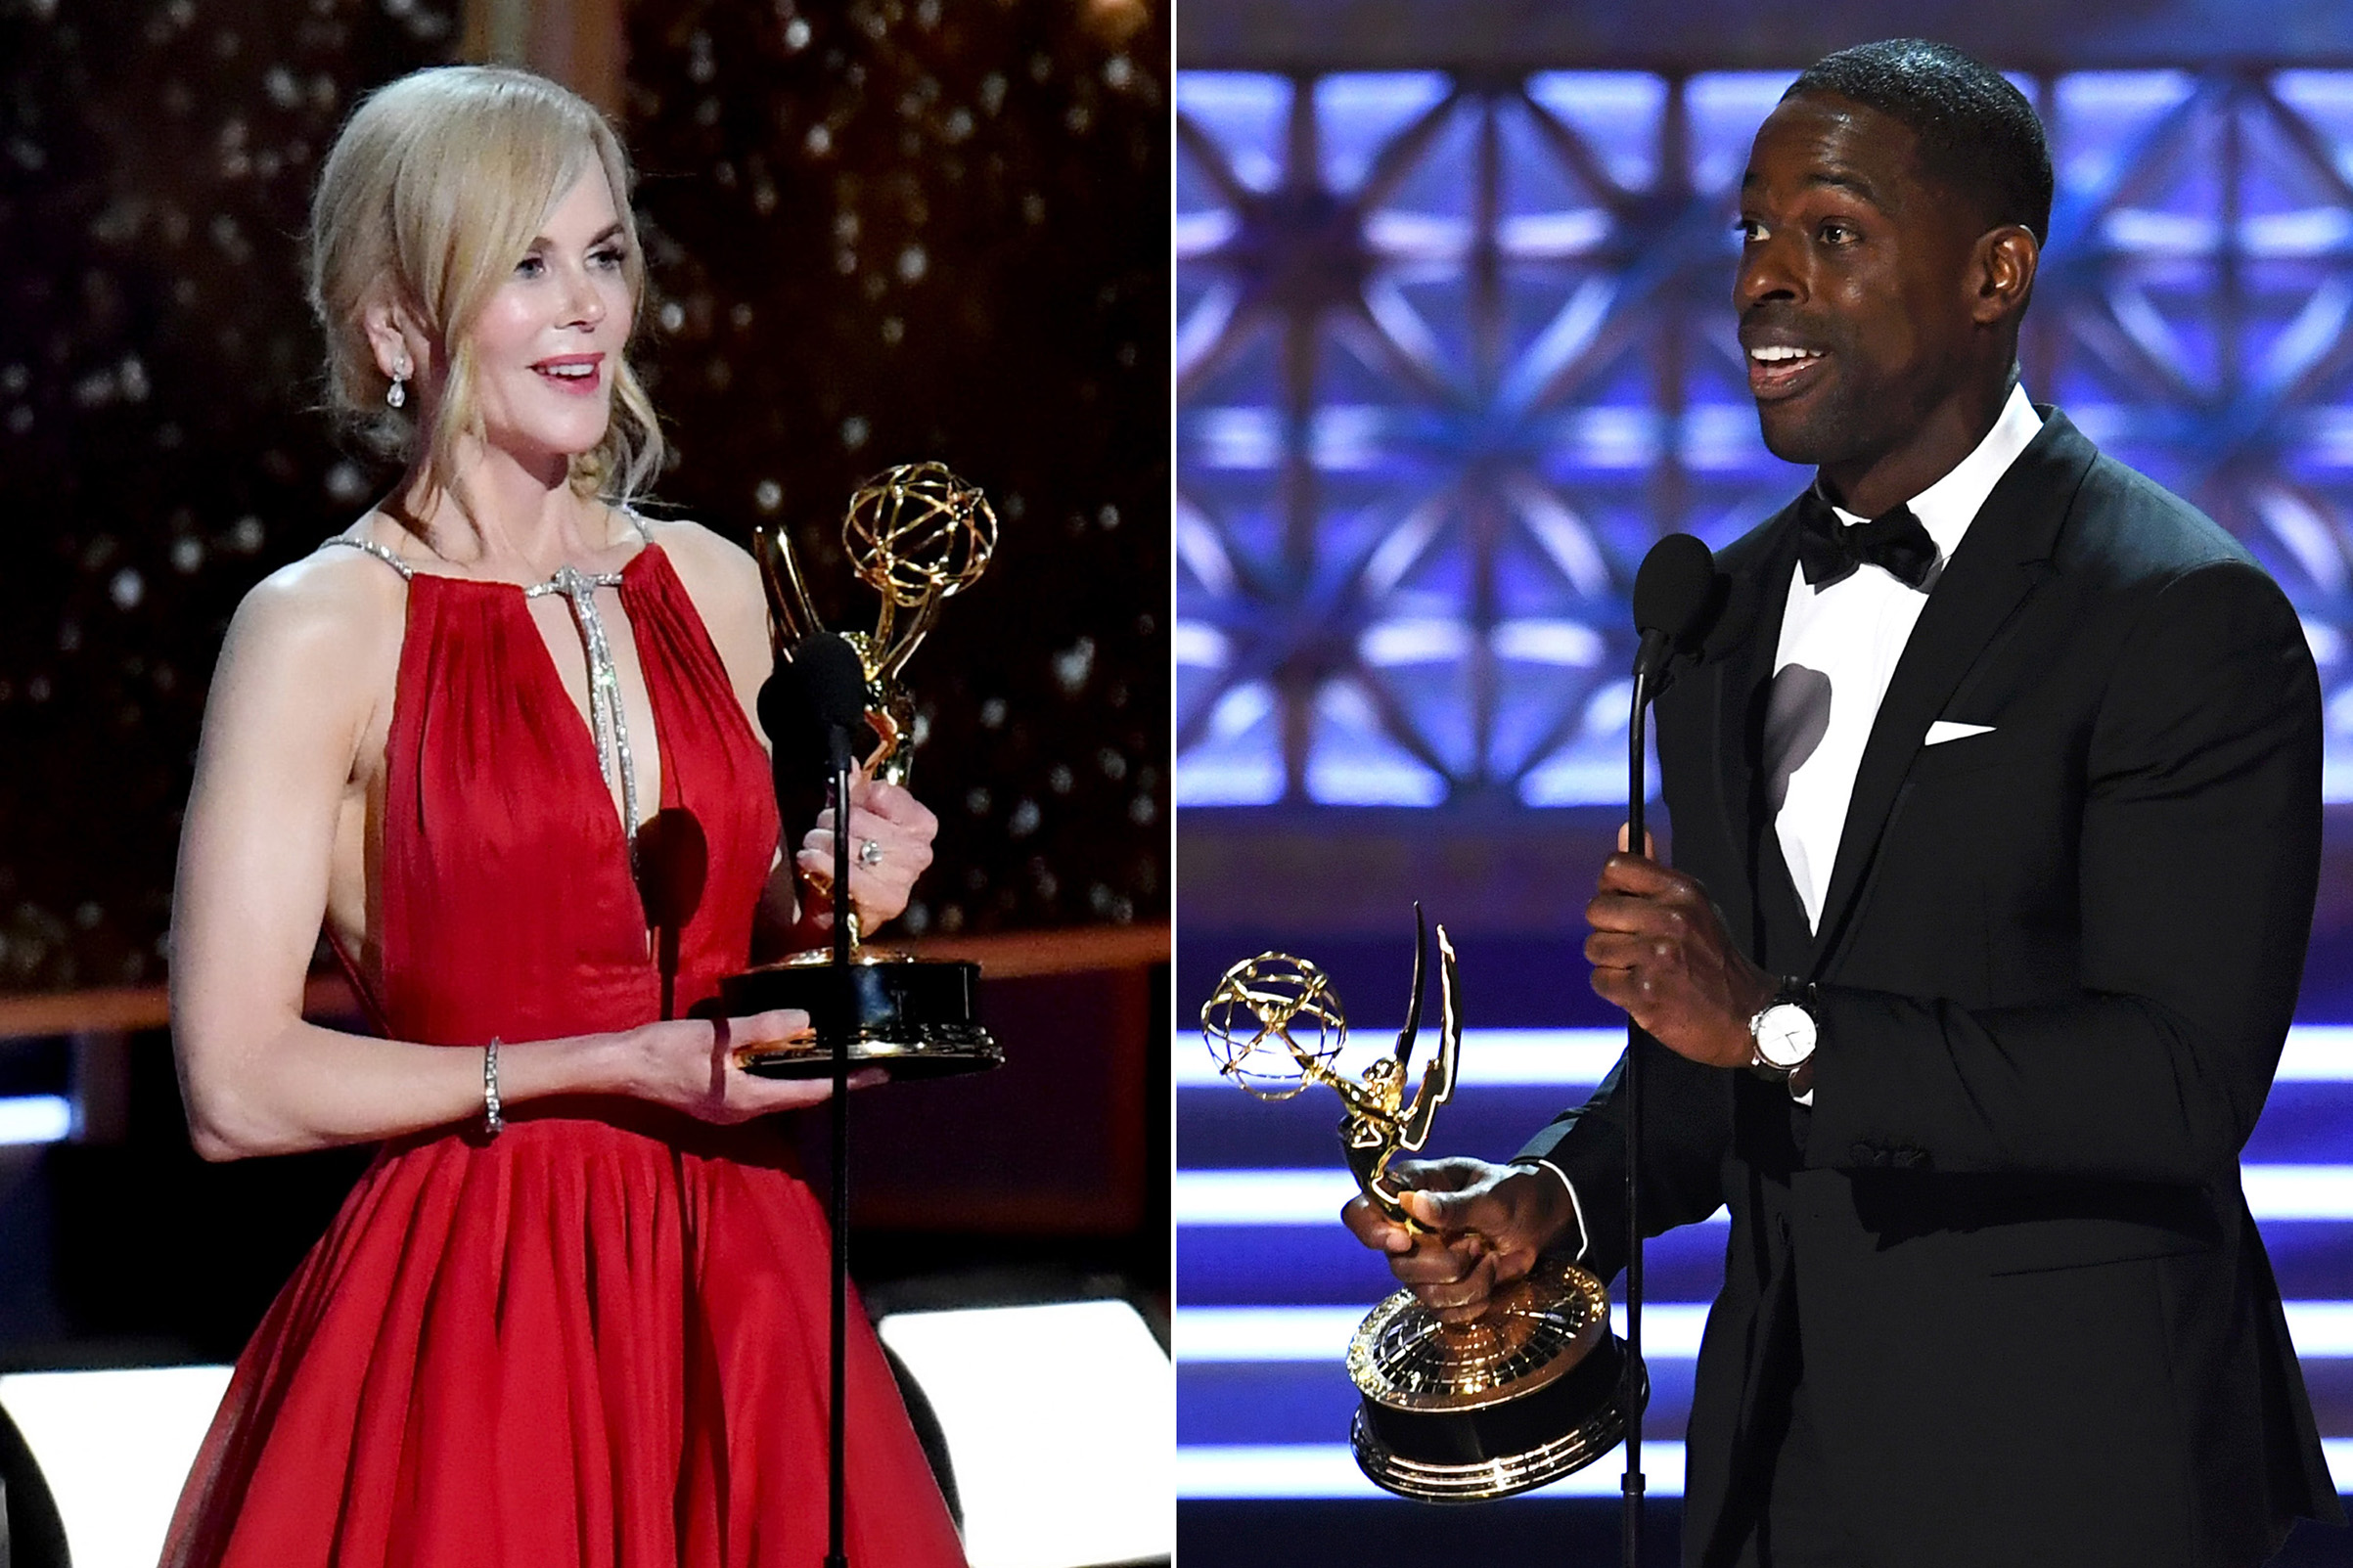 Nicole Kidman and Sterling K. Brown accept awards onstage during the 69th Annual Primetime Emmy Awards at Microsoft Theater  in Los Angeles, on Sept. 17, 2017.